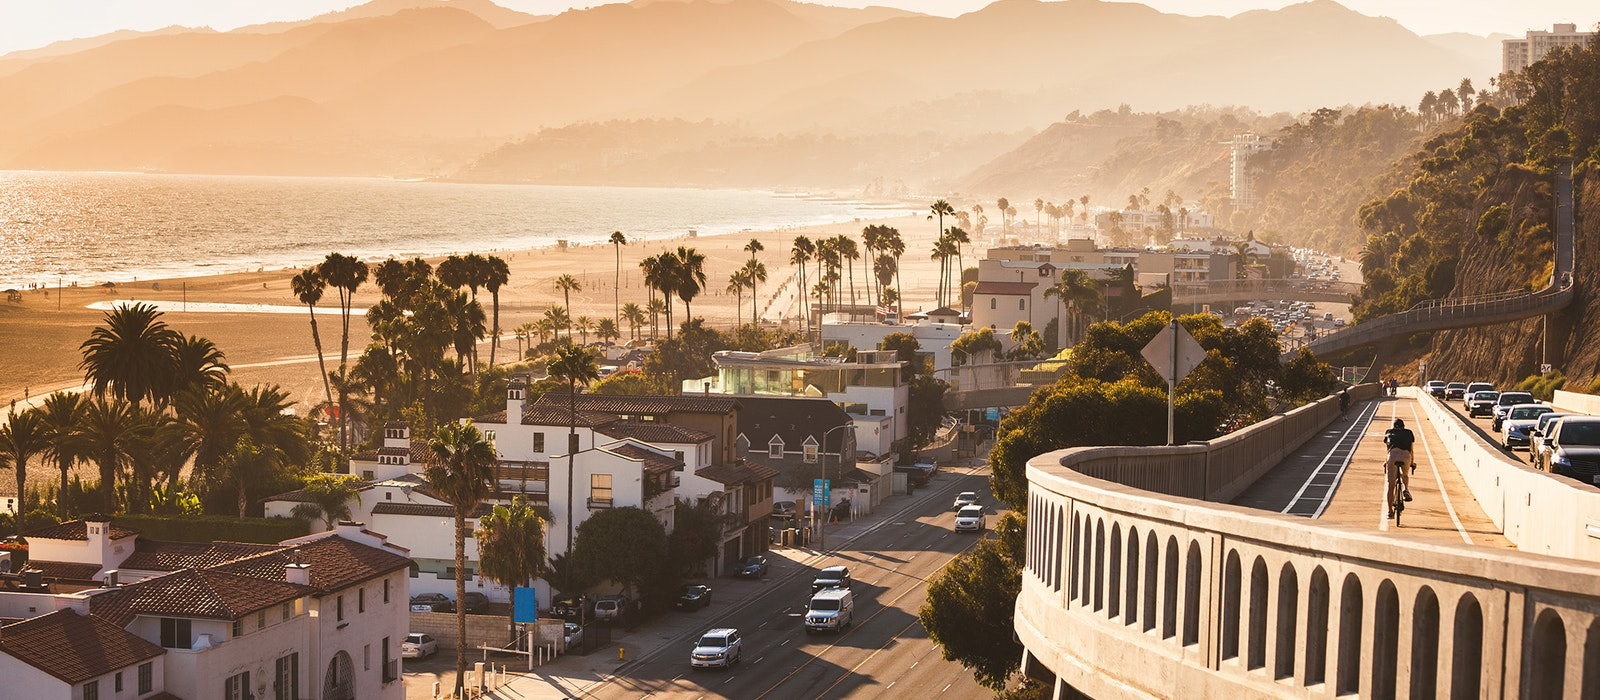 Michelin's first statewide guide will be essential reading before any California road trip.